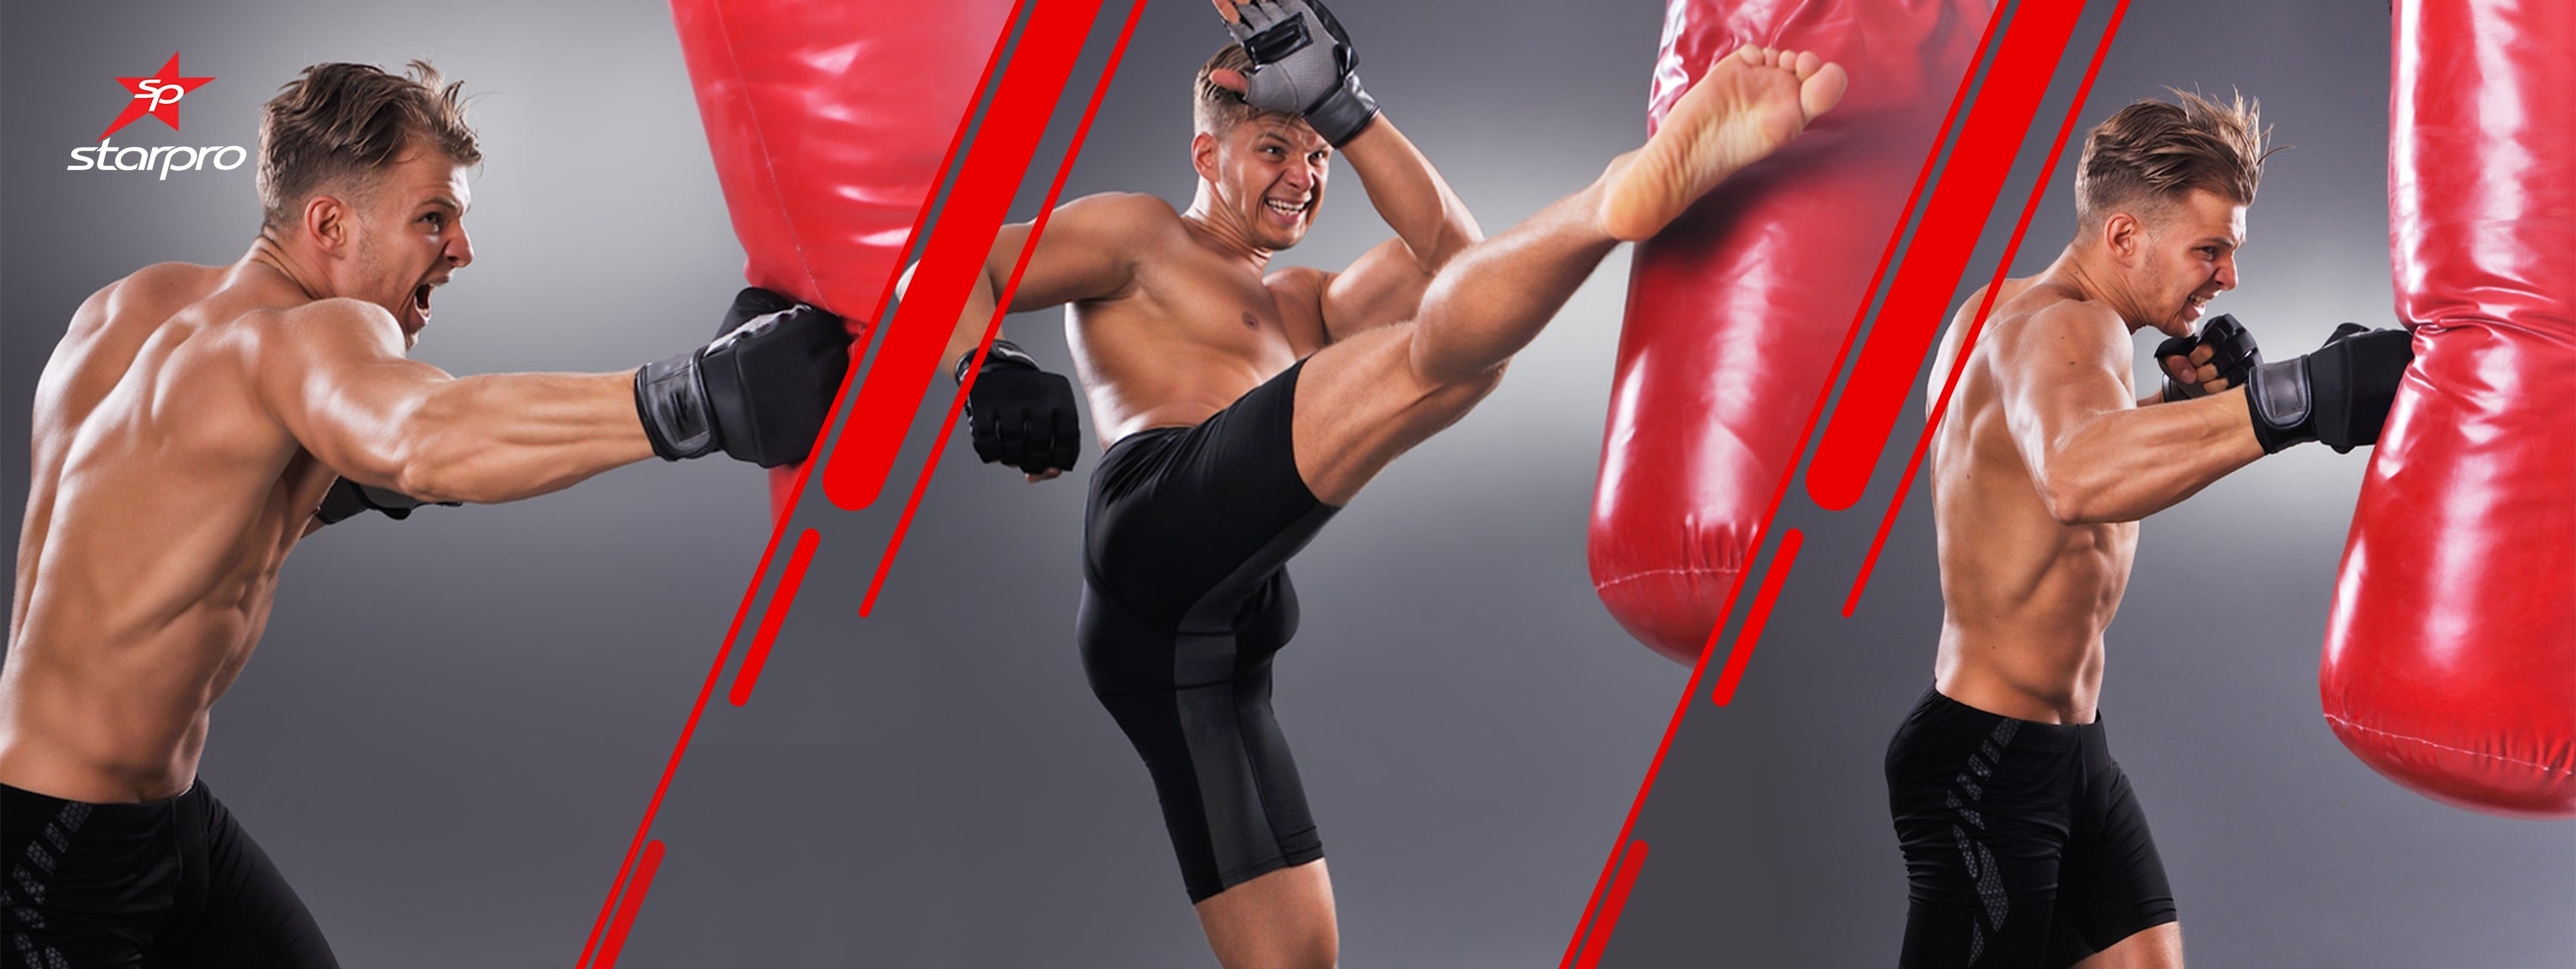 Starpro best boxing gloves for punching bags